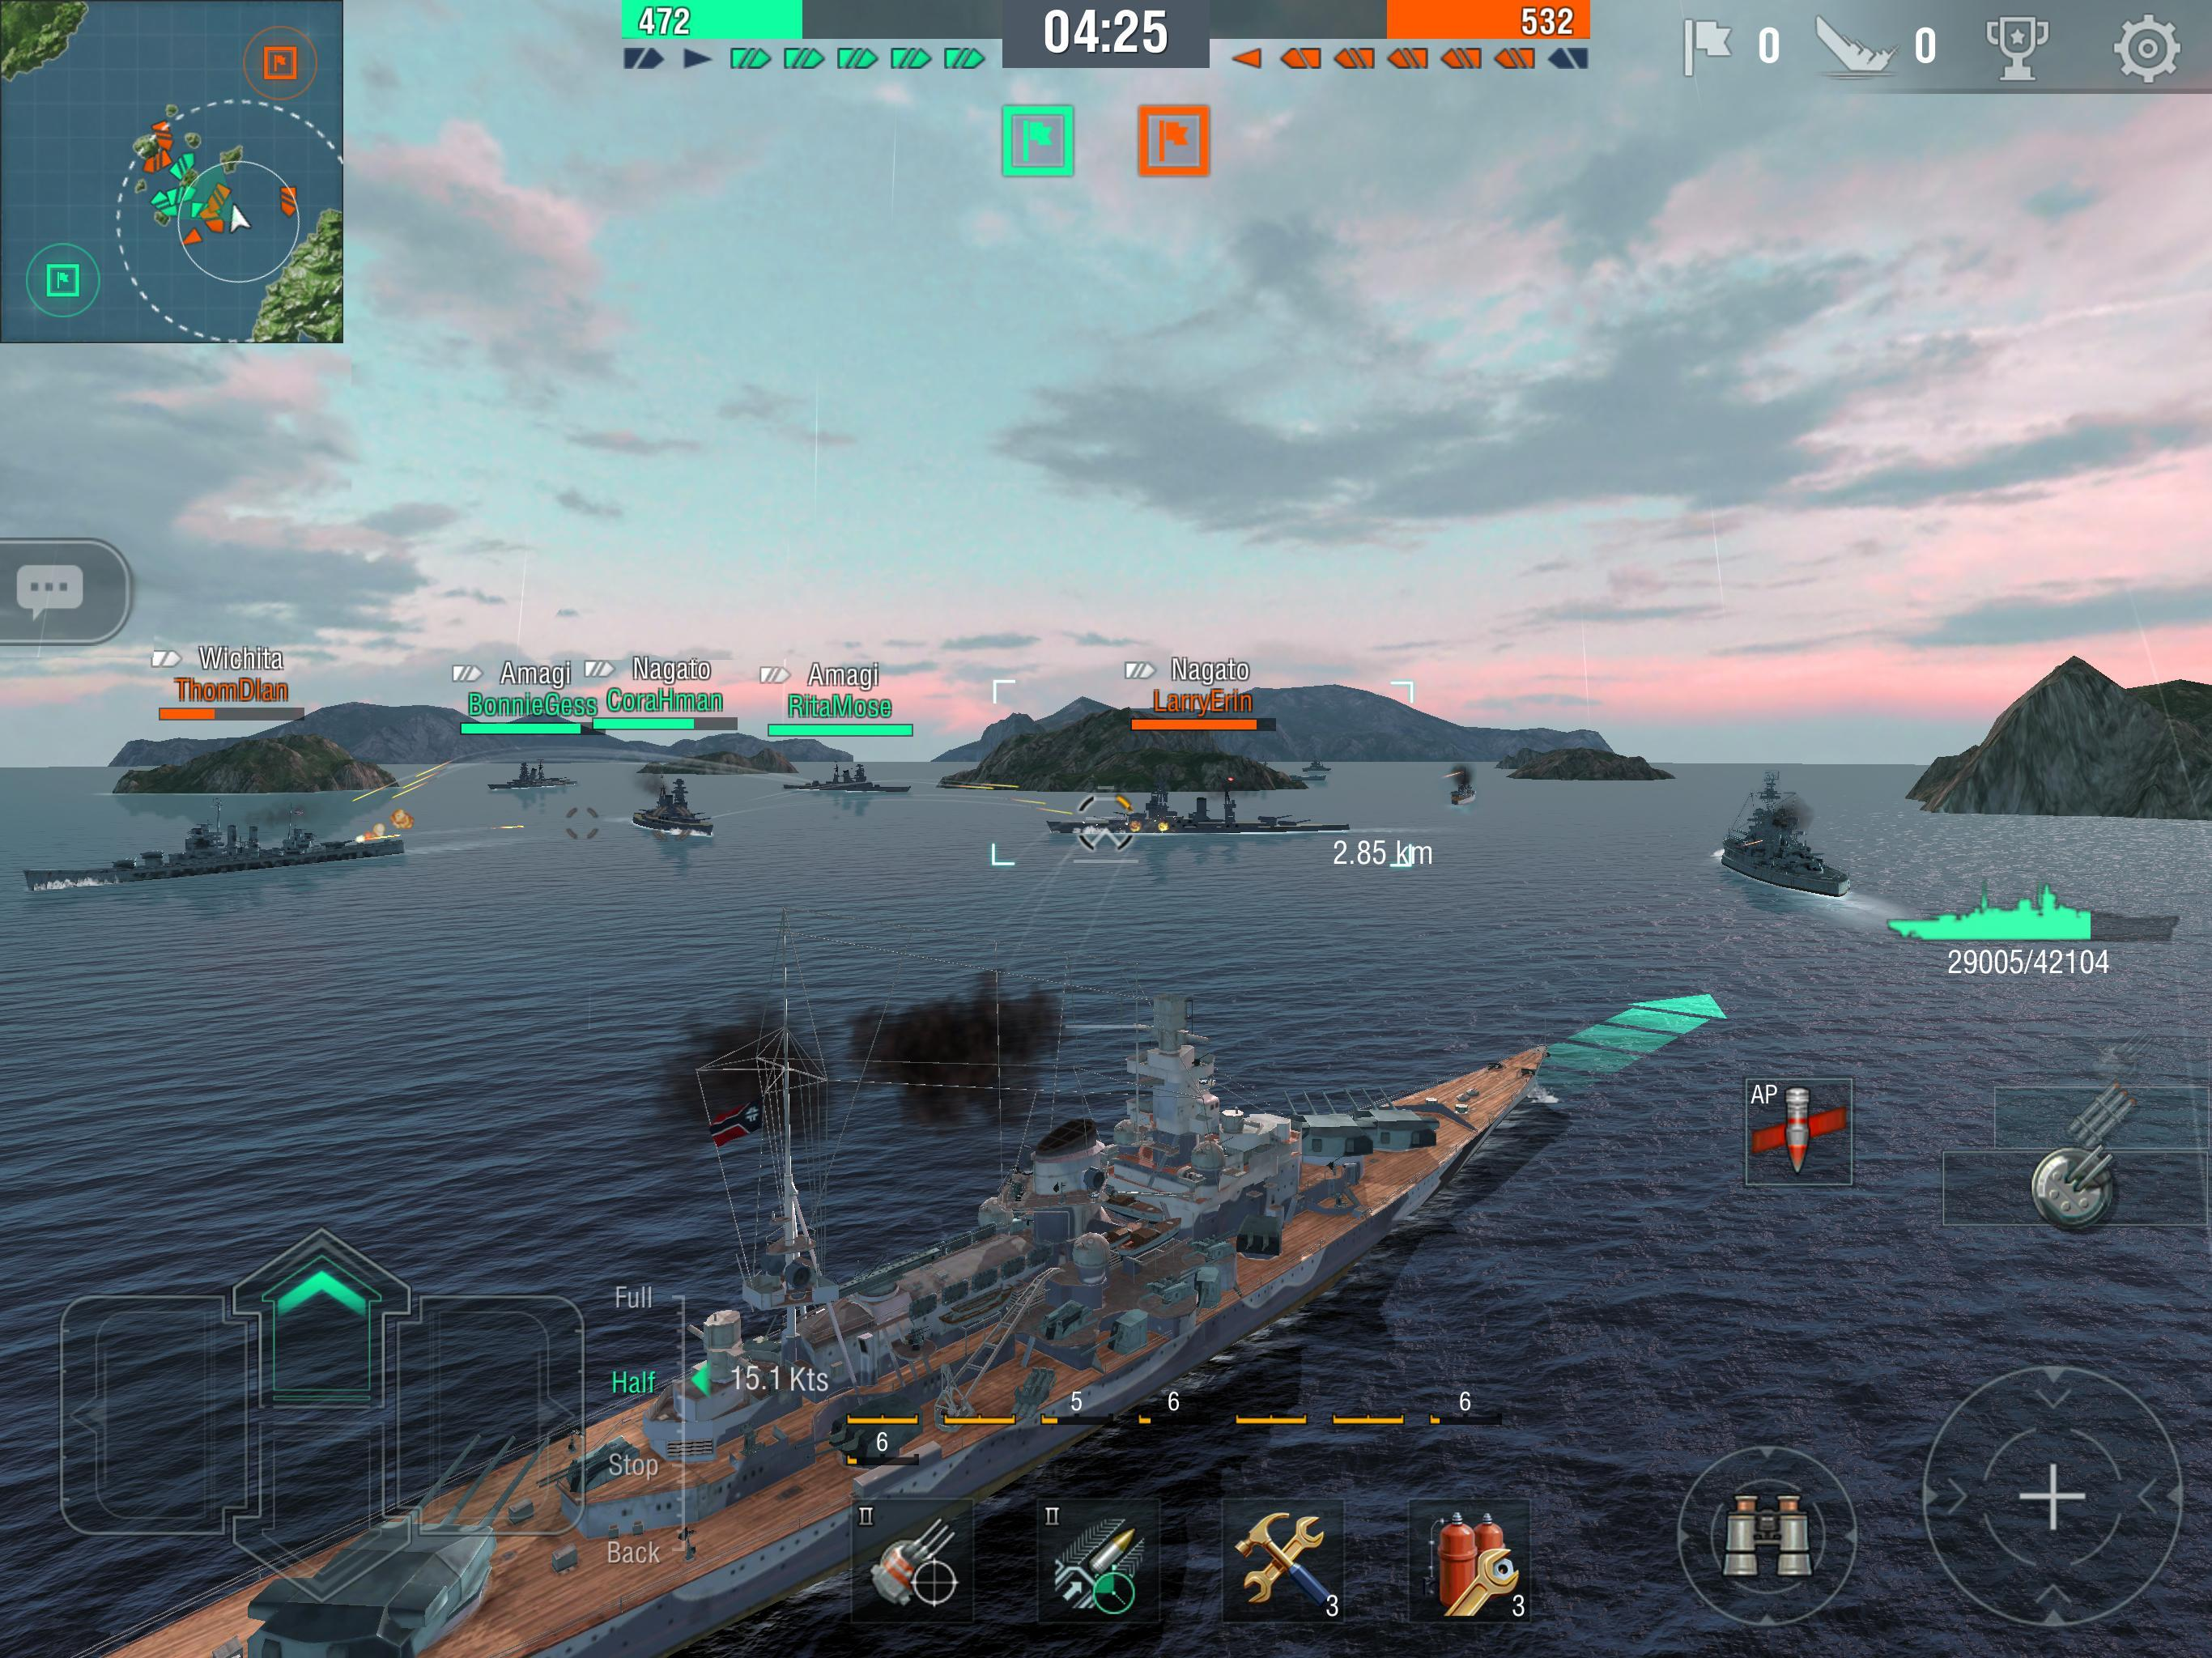 World of Warships Blitz: Gunship Action War Game 3.3.0 Screenshot 12